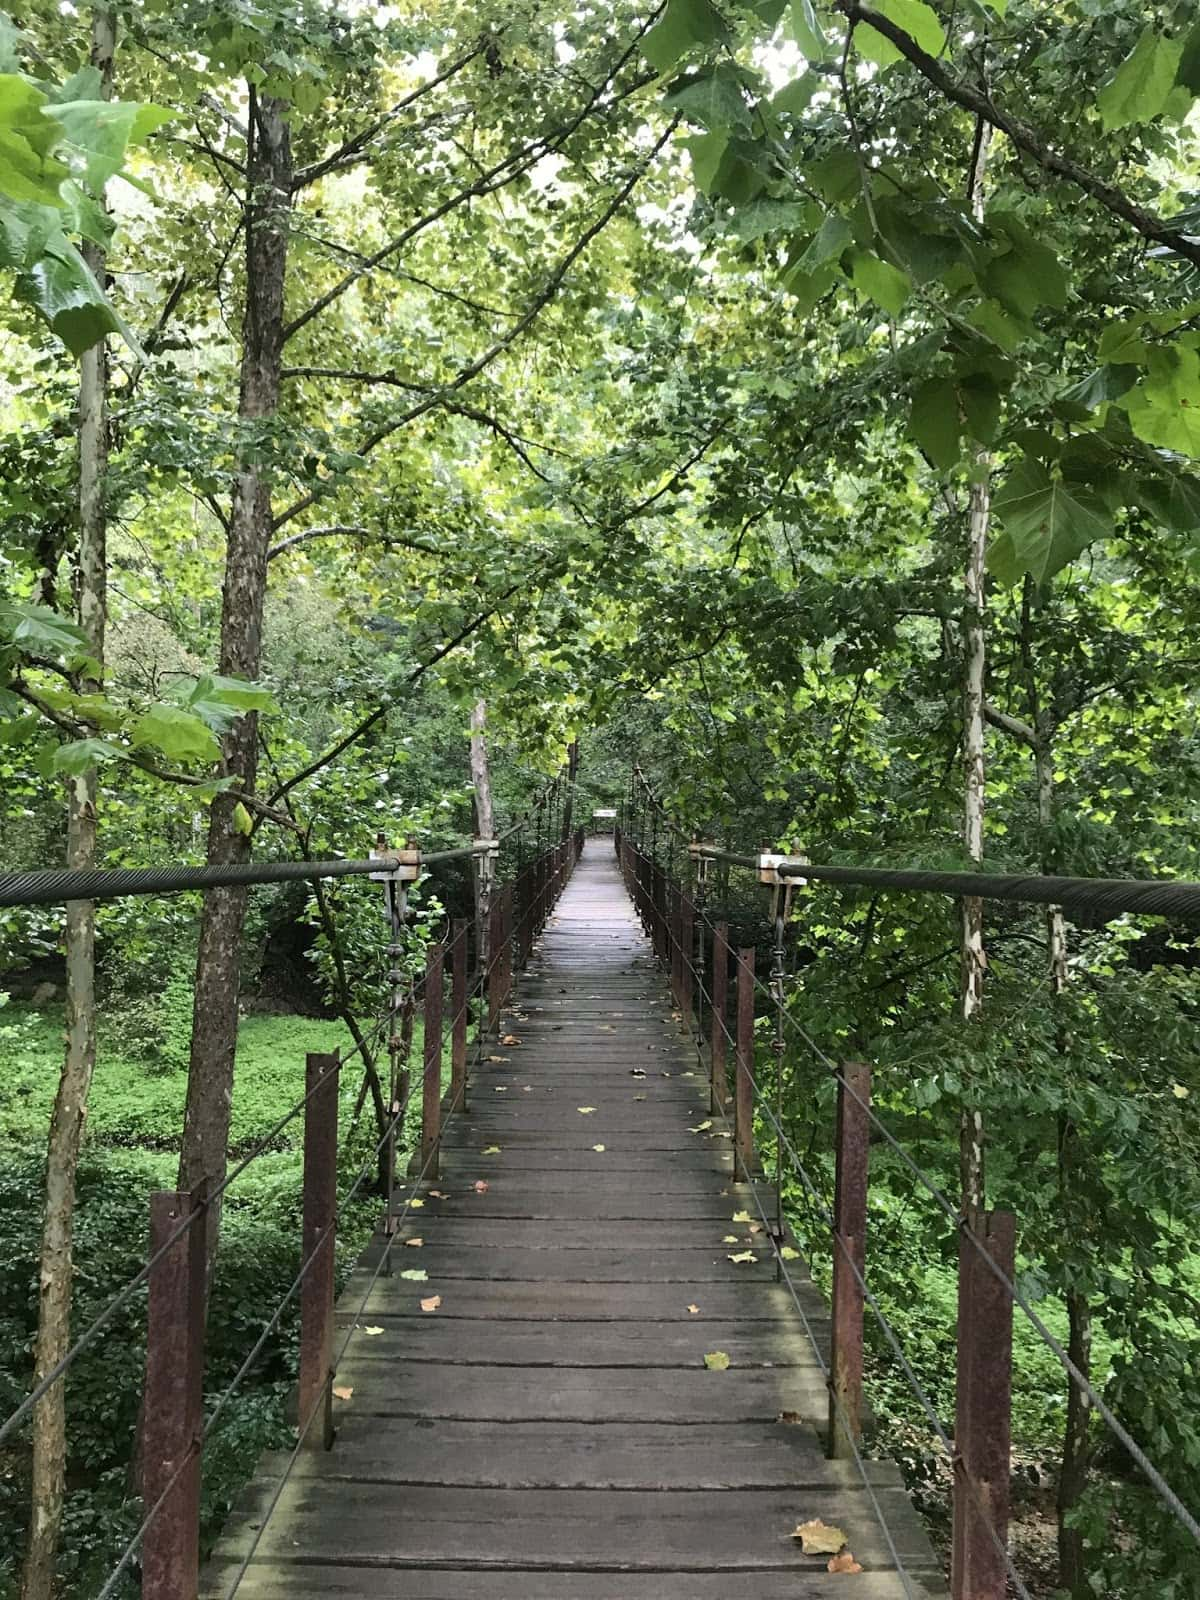 Avalon Loop Trail // Looking for the best hikes in Maryland? Here are our 7 favorite Maryland trails including distances, descriptions, and local tips.